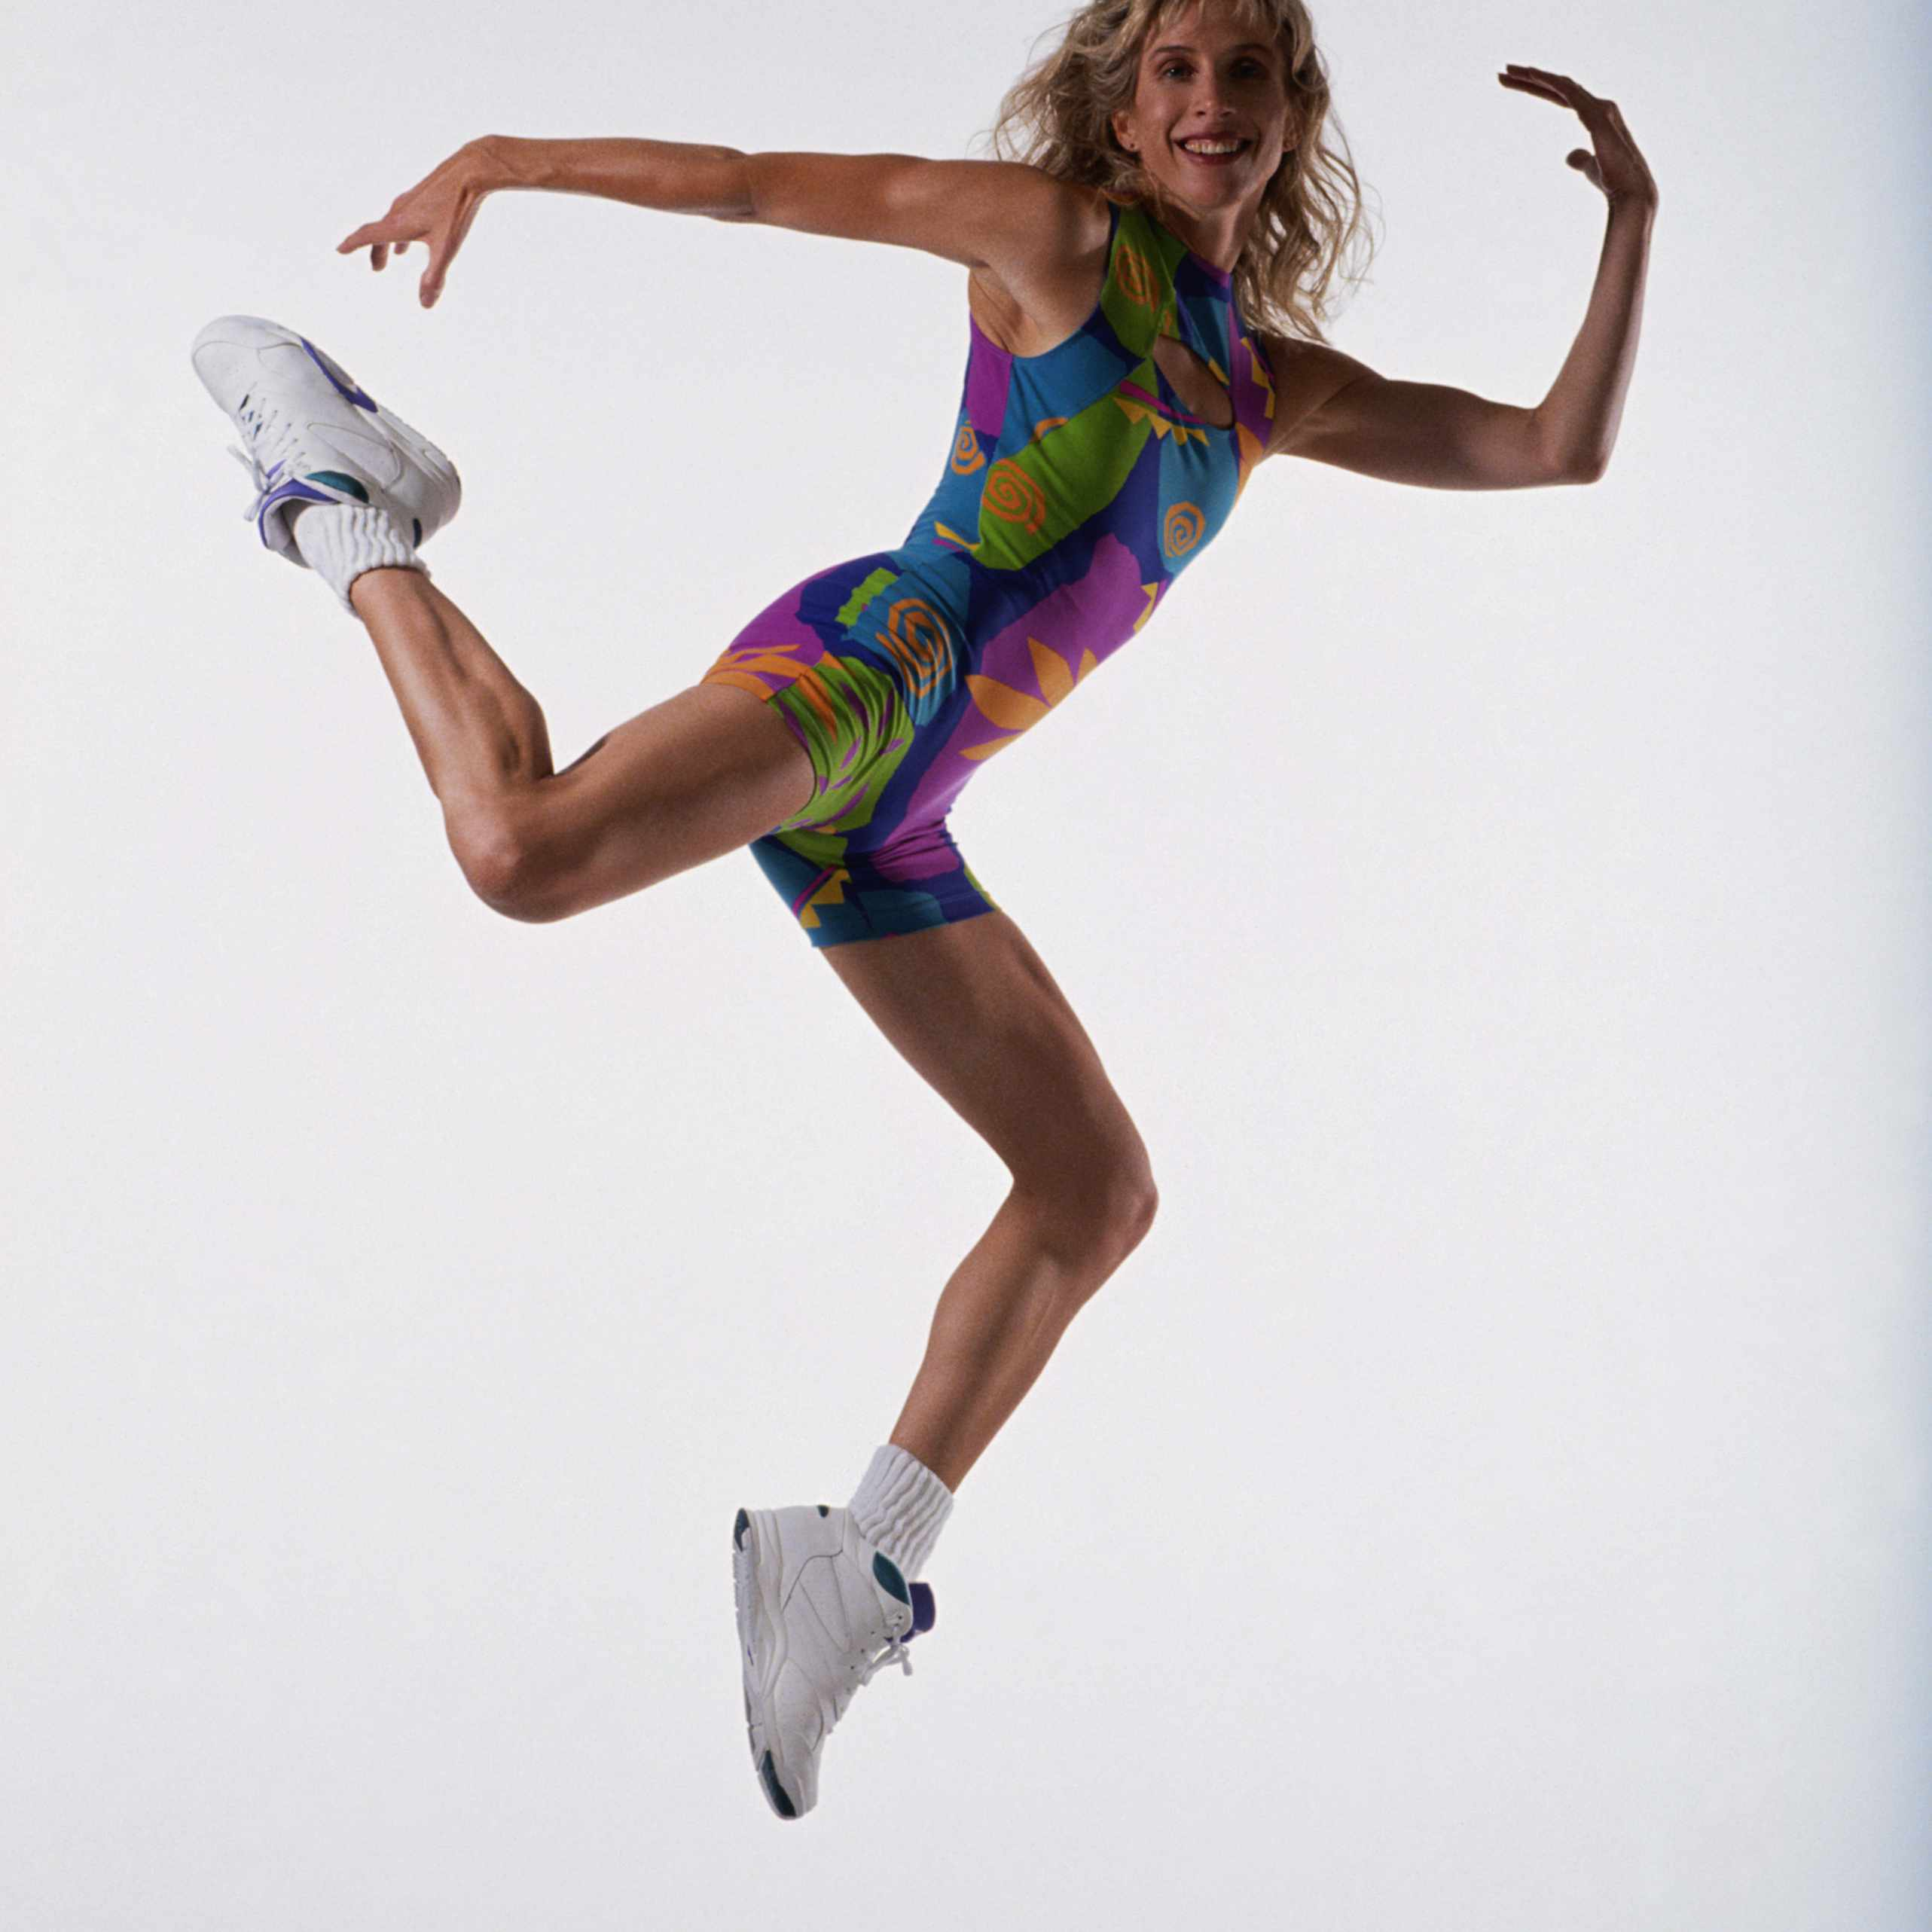 Aerobics in the air 1980s